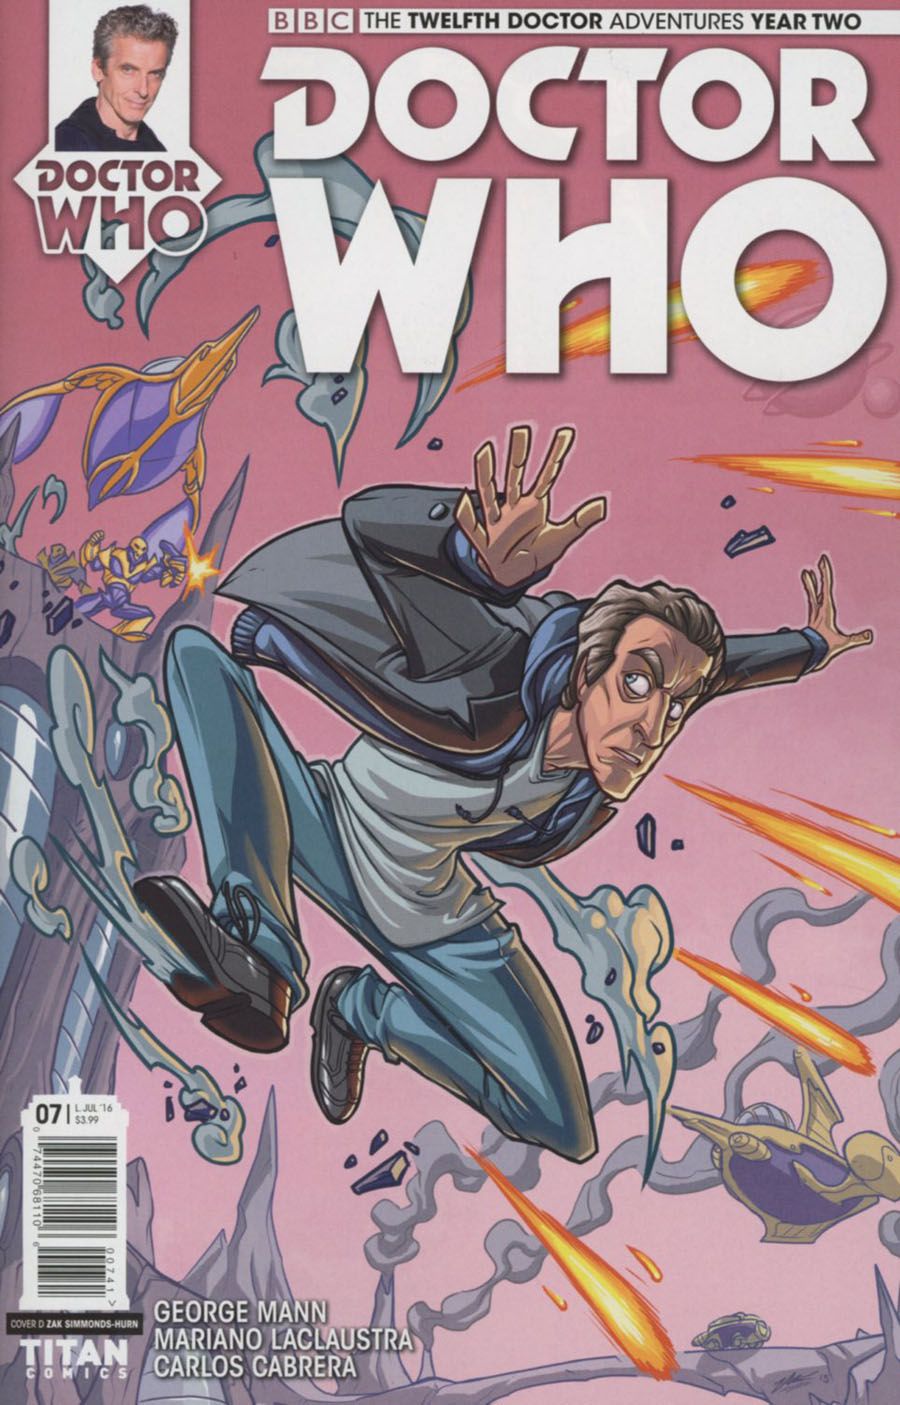 Doctor Who 12th Doctor Year Two #7 Cover D Variant Zak Simmonds-Hurn Cover